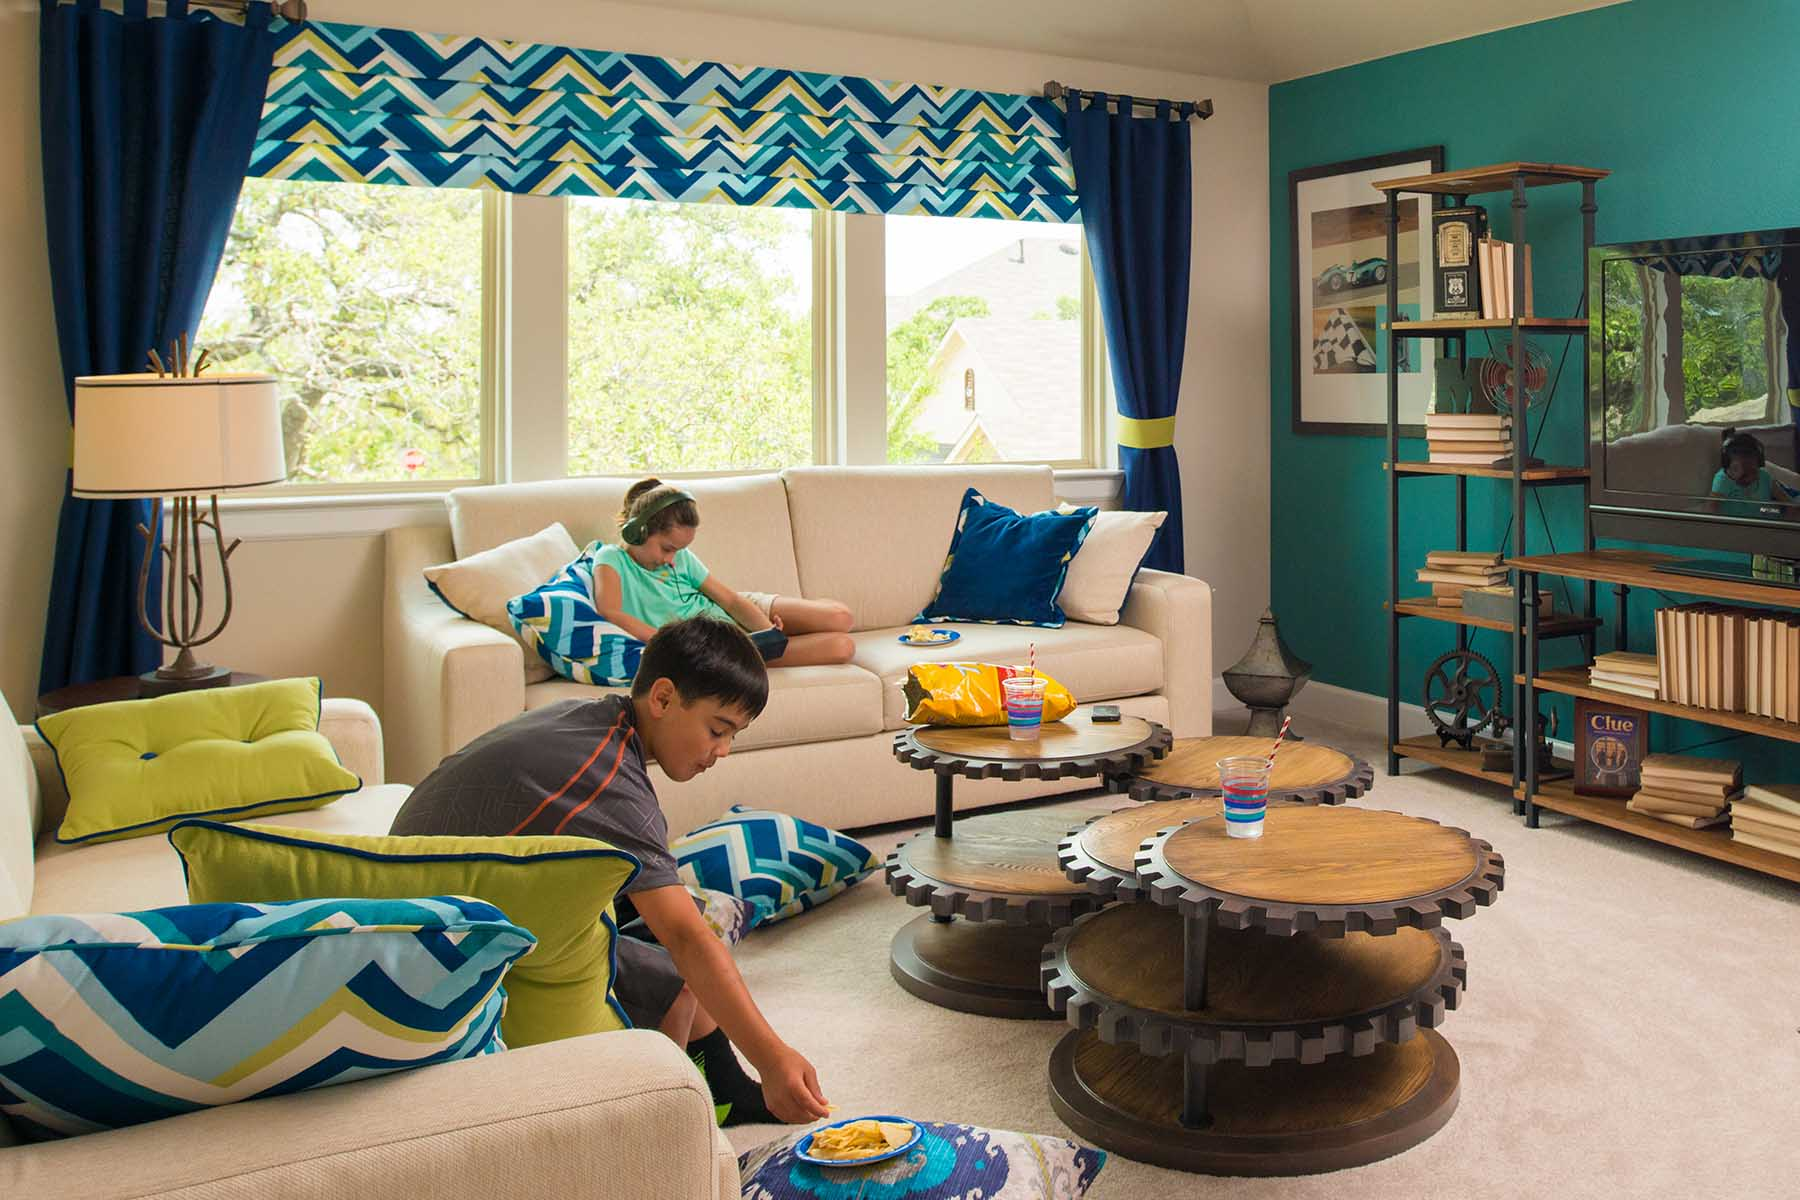 Kids Play Room Ideas: Where Will Your Kids Make Memories at Home?